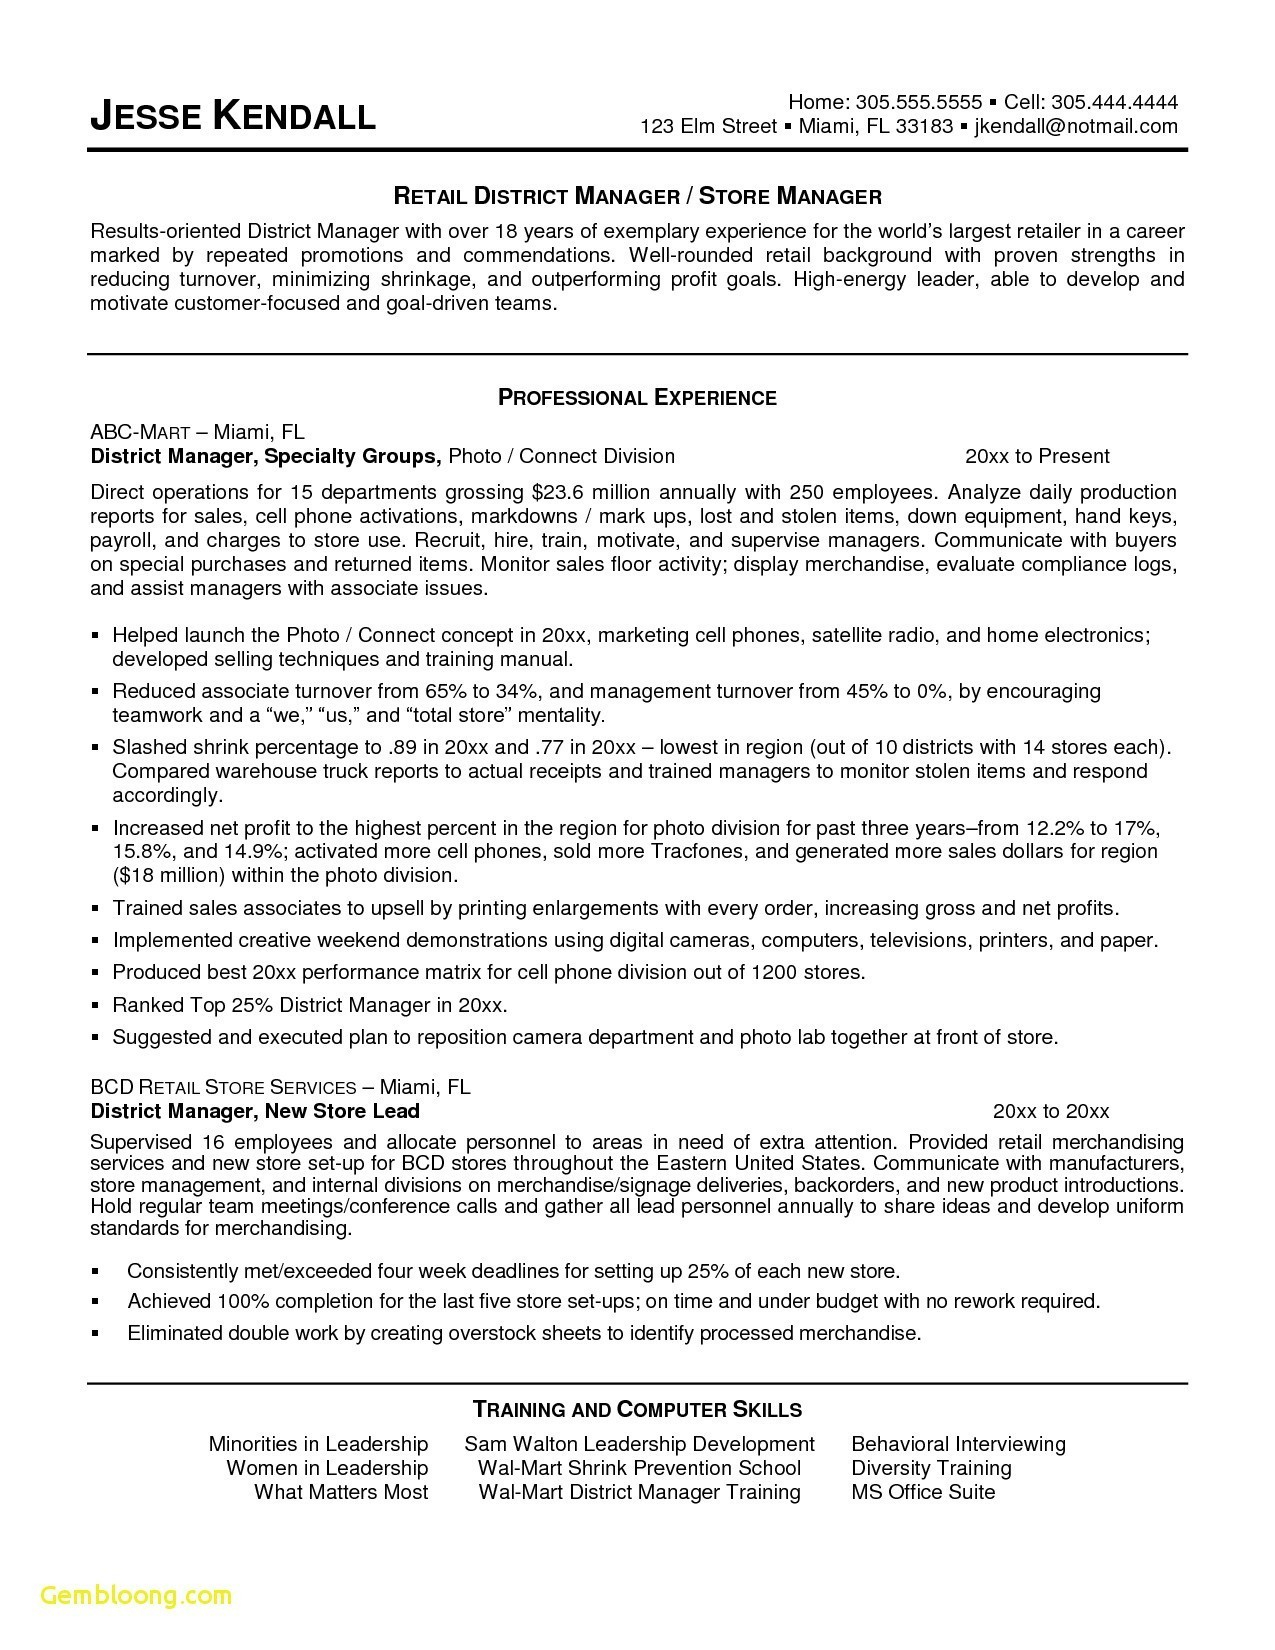 Ats Friendly Resume Templates - 25 Inspirational ats Friendly Resume Template